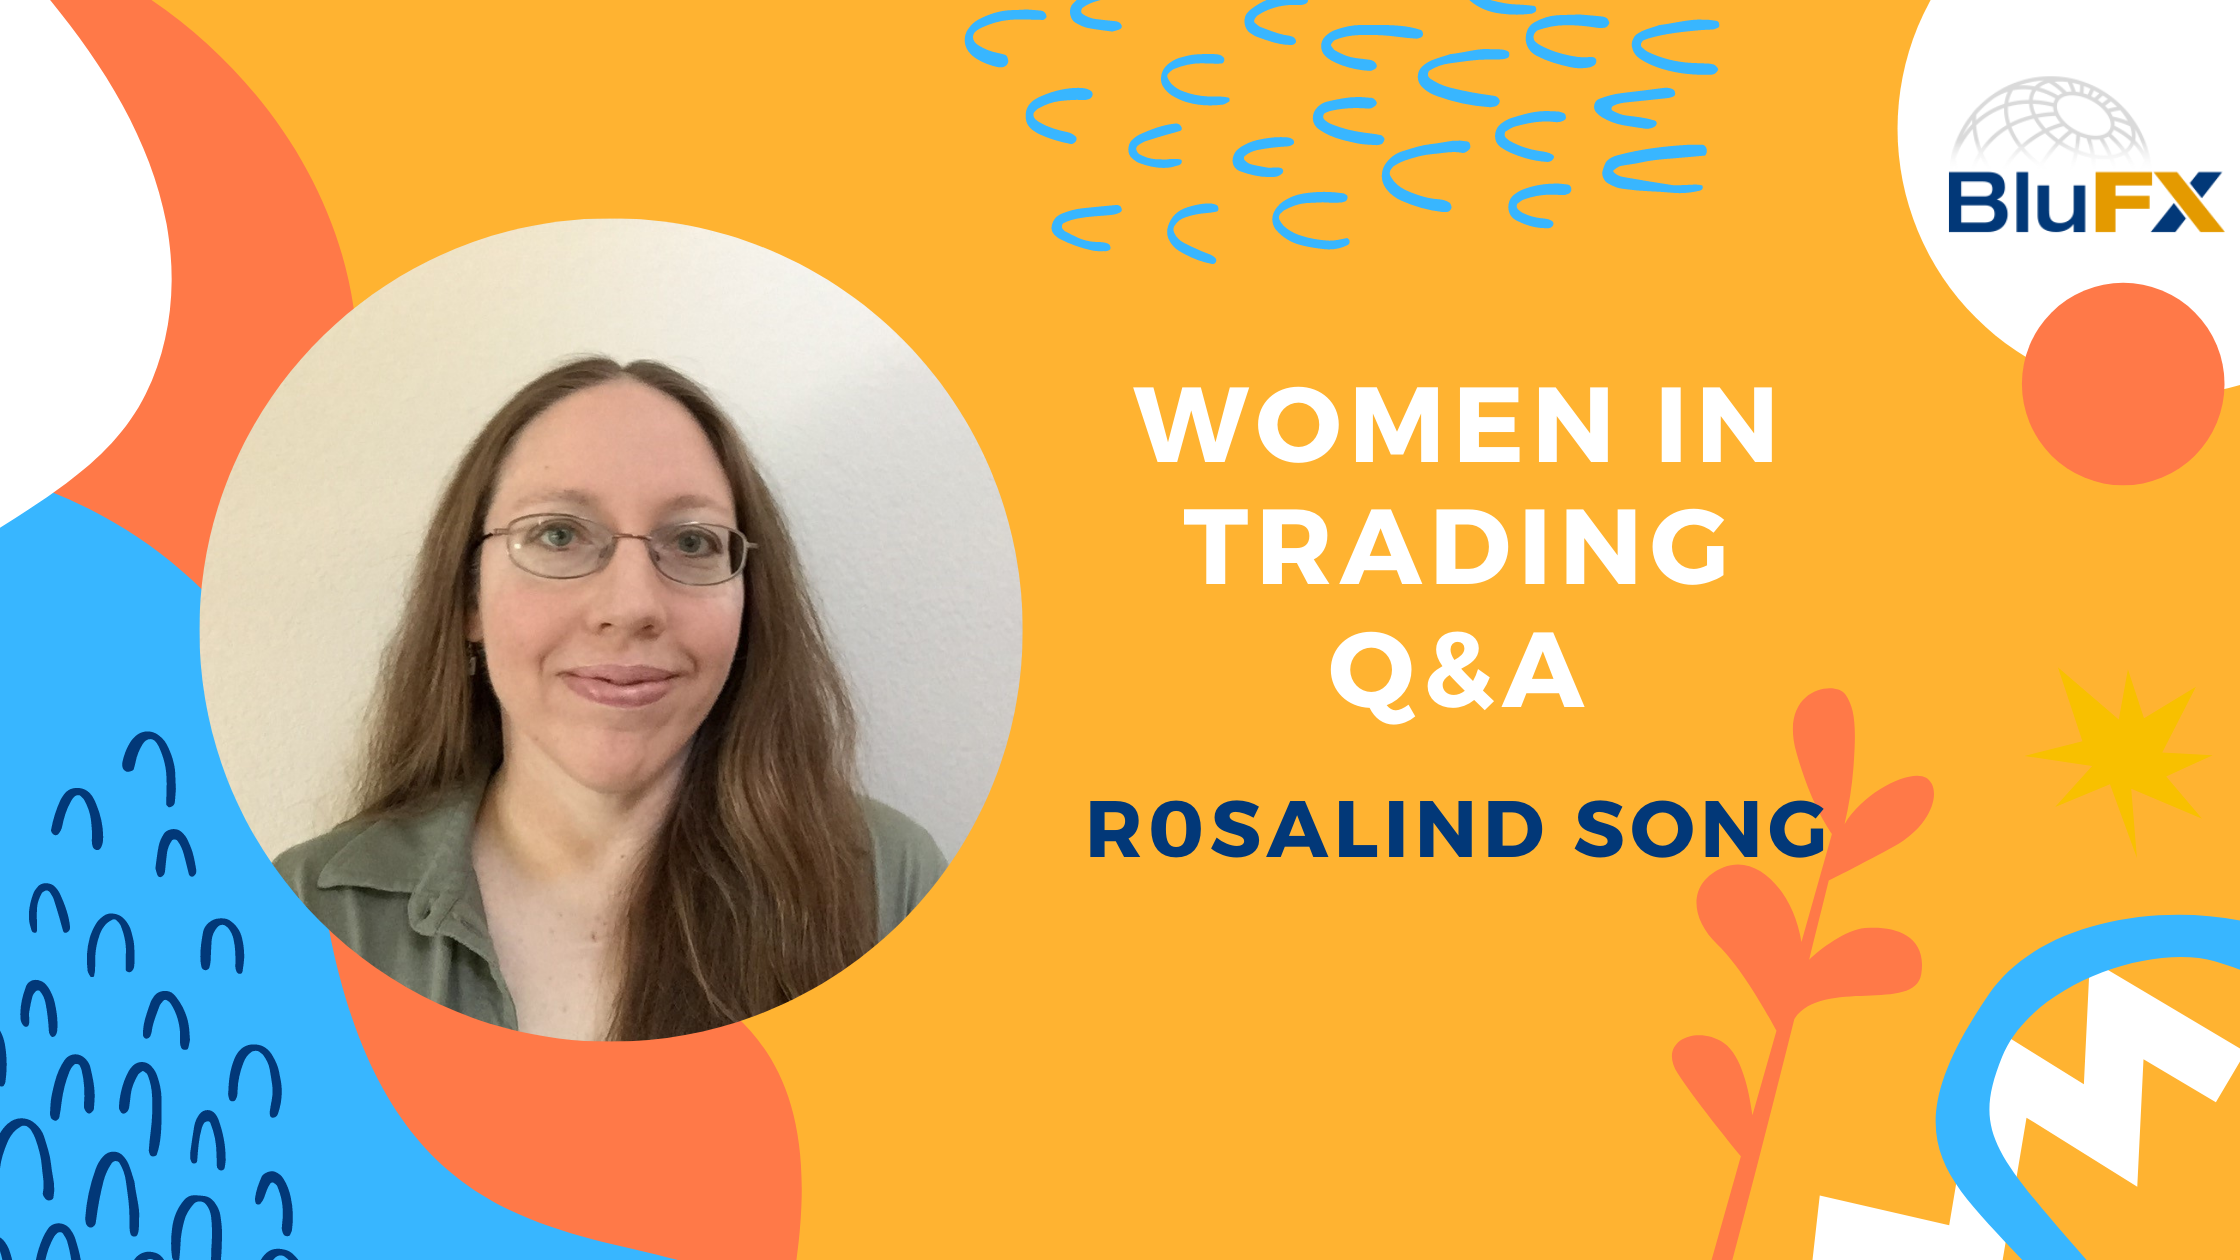 Women in Trading Rosalind Song